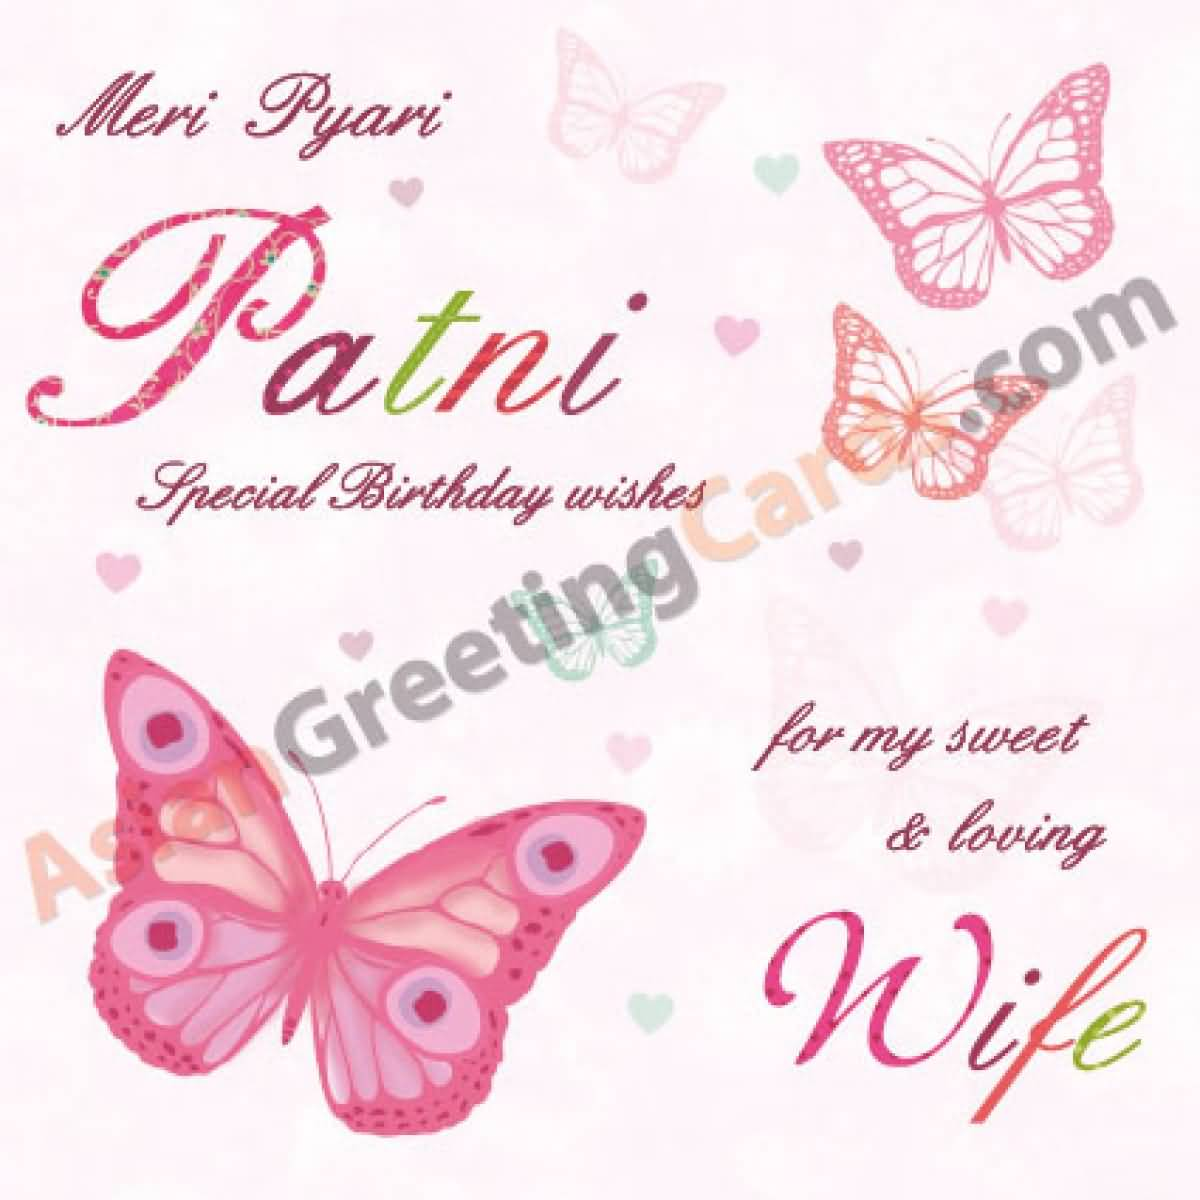 birthday message for wife in english ; Romantic%252BHappy%252BBirthday%252BWishes%252Bfor%252BWife%252Bwith%252BImages%252Band%252BQuotes%252B%2525282%252529